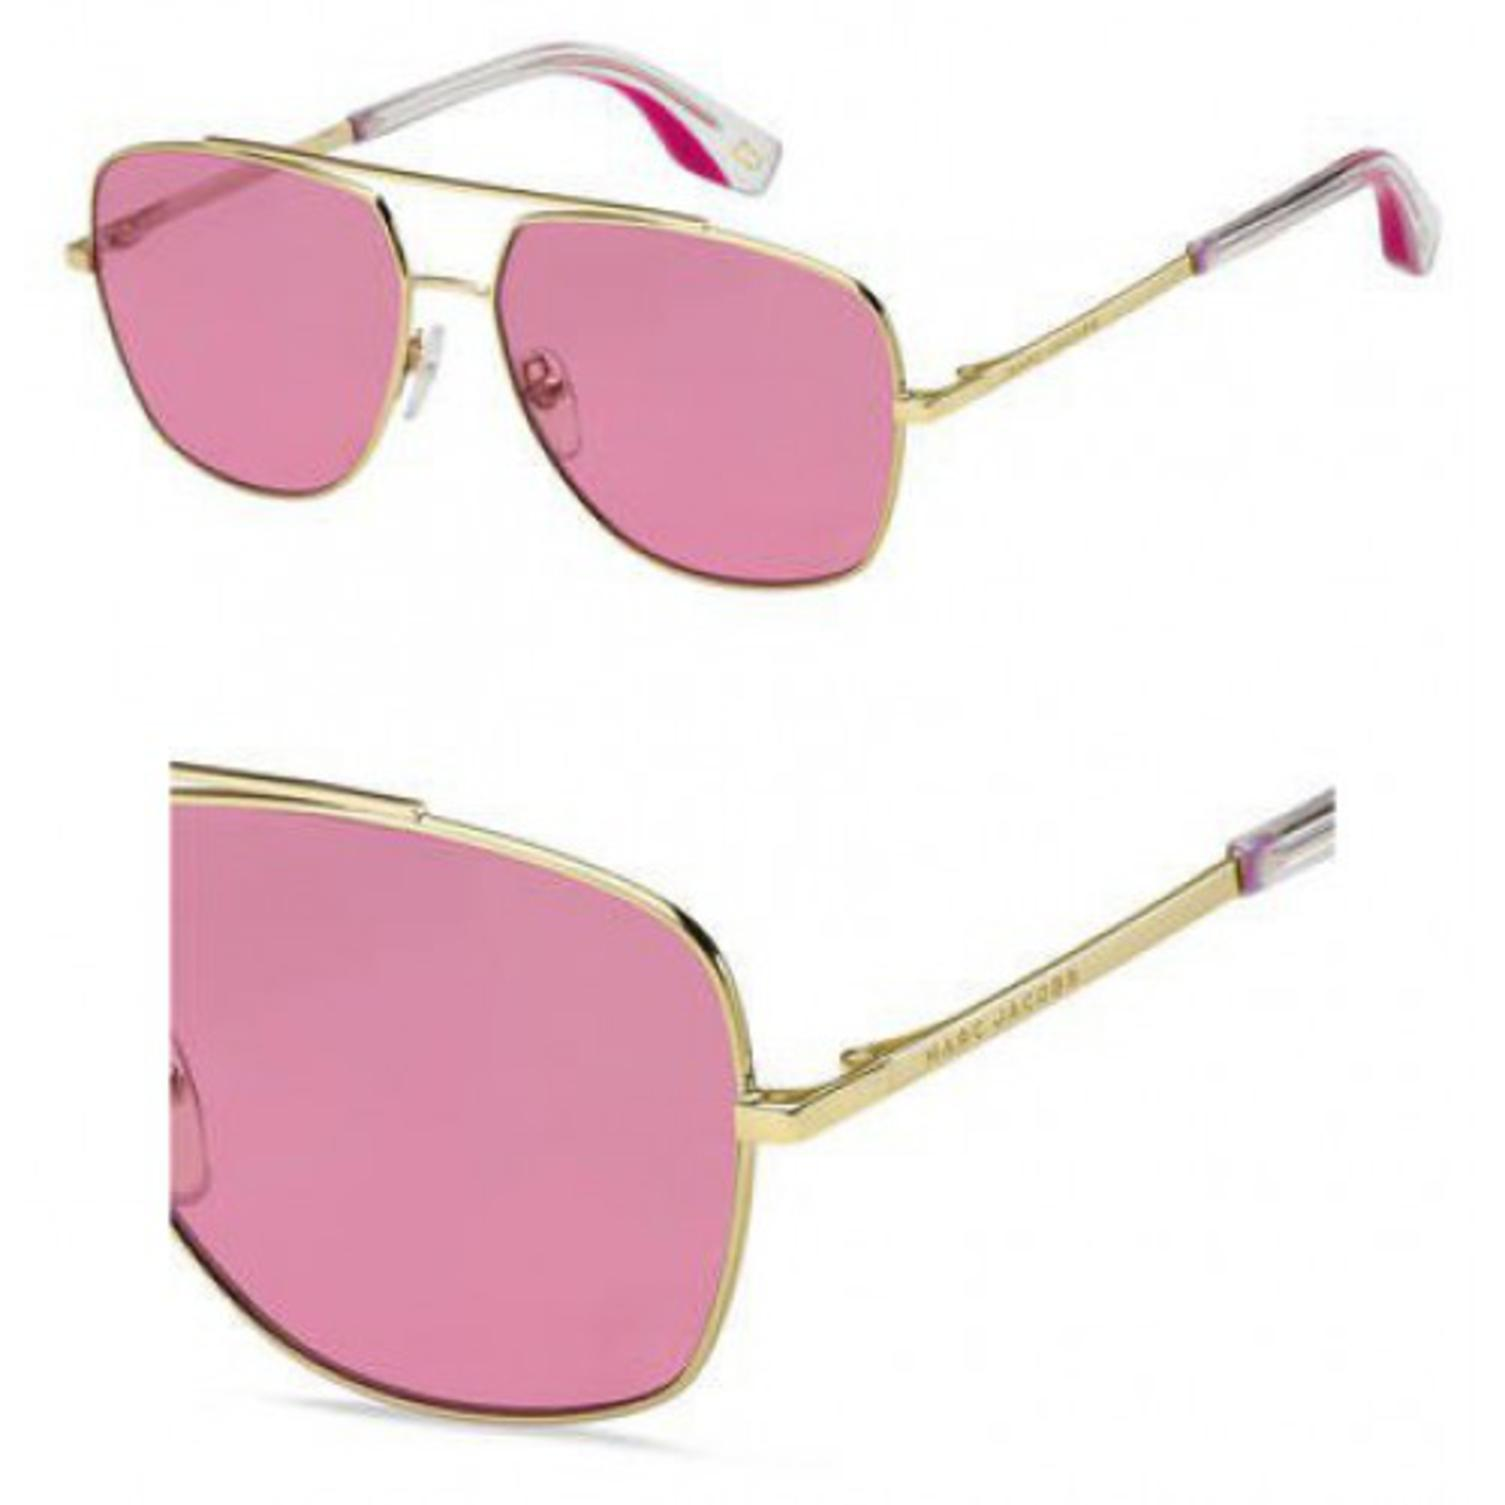 Sunglasses Marc Jacobs 271 /S 0EYR Gold Pink / U1 red lens